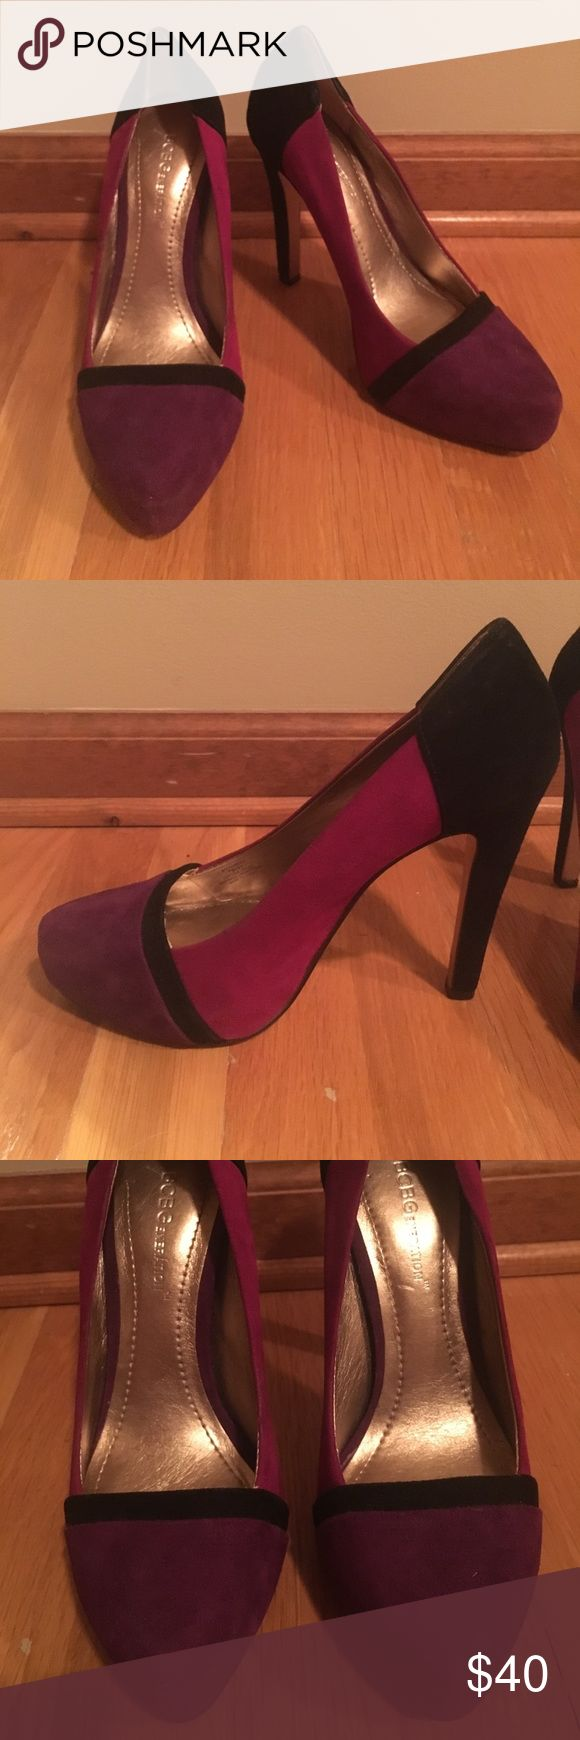 BCBG 4 inch heels (size 7) These are super cute BCBG heels, only worn twice and in great condition.  They are size 7 and a suede material.  They have magenta, purple, and black coloring and a 4 inch heel.  Feel free to reach out with any questions :) BCBGeneration Shoes Heels